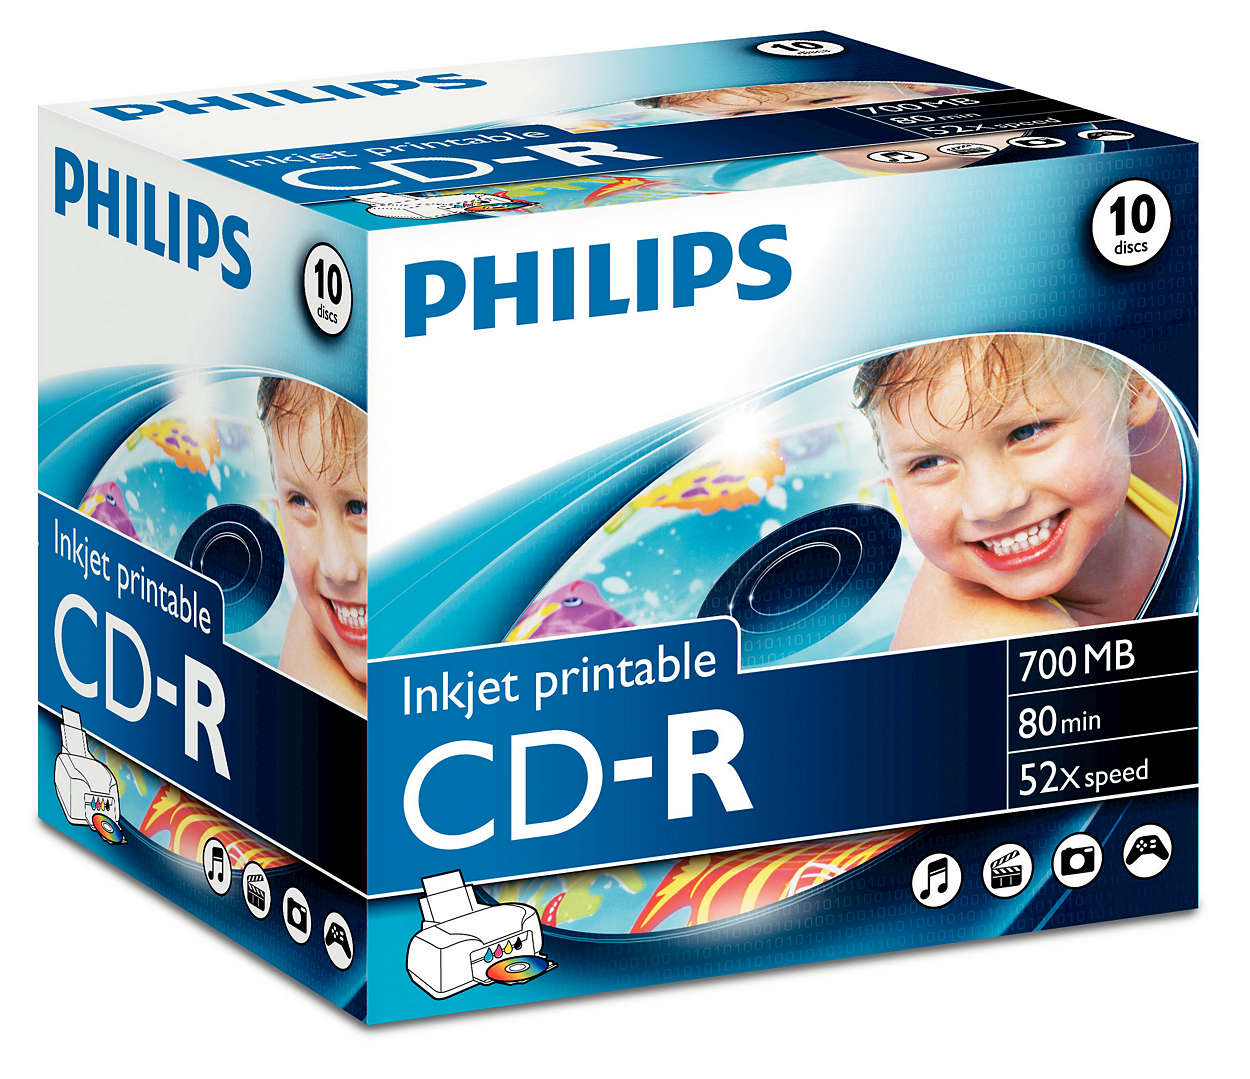 Inventor of CD and DVD technologies